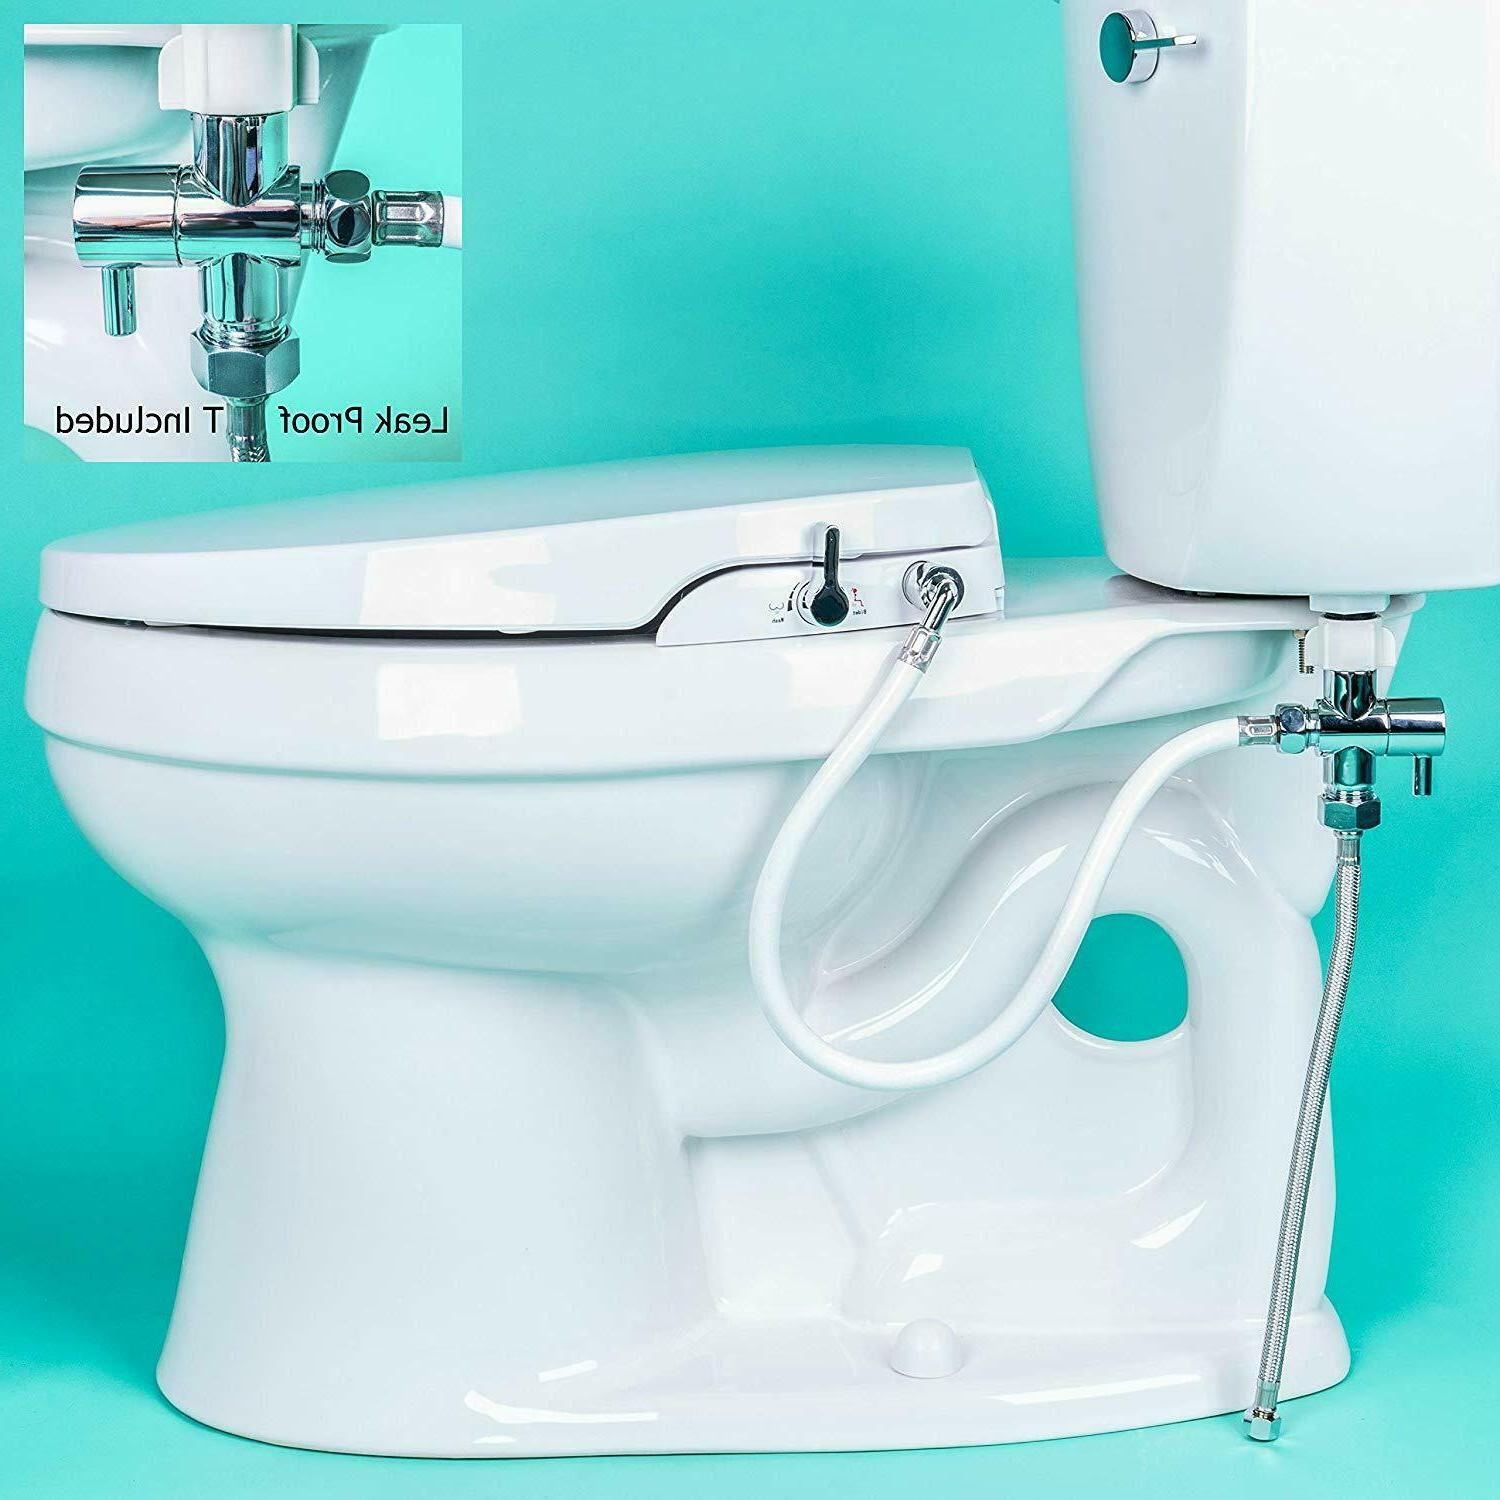 Enjoyable Rear Feminine Cleaning No Wiring Required Geniebidet Seat Pdpeps Interior Chair Design Pdpepsorg